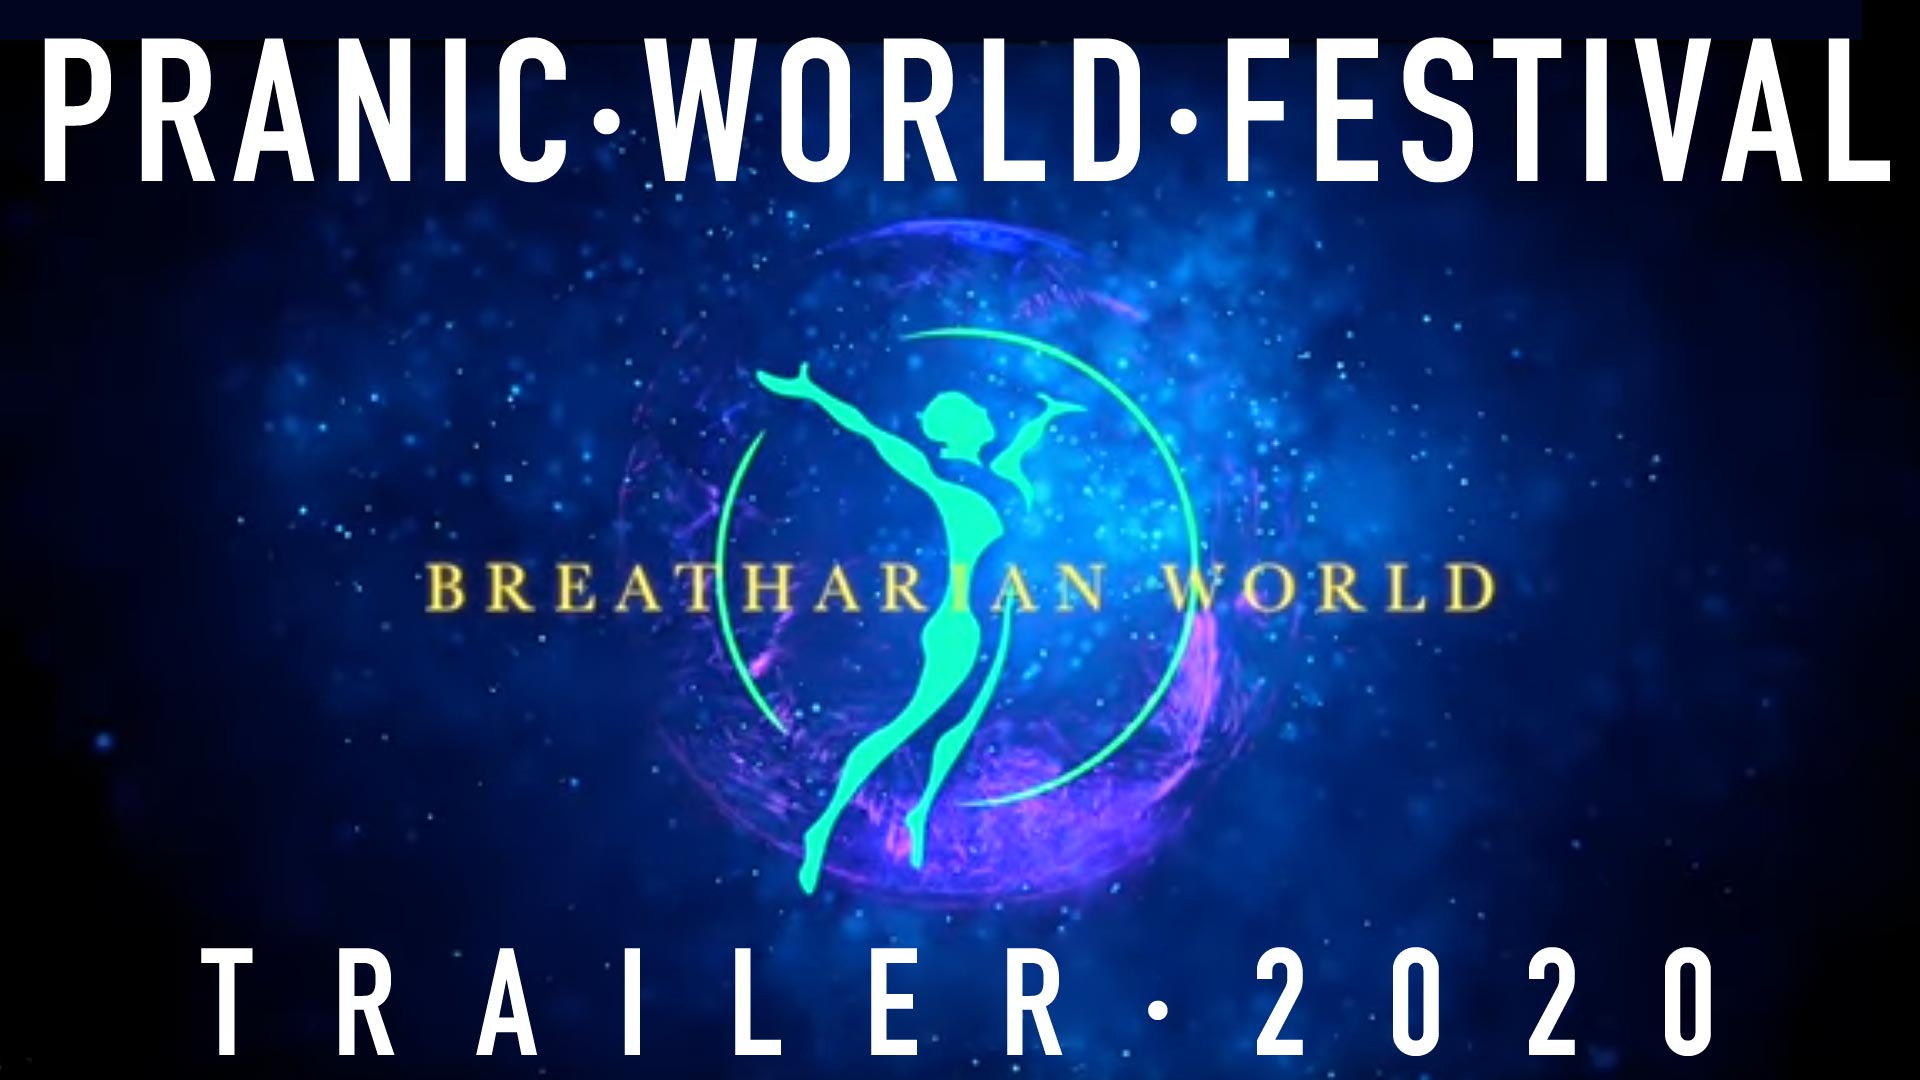 Pranic World Festival 2020